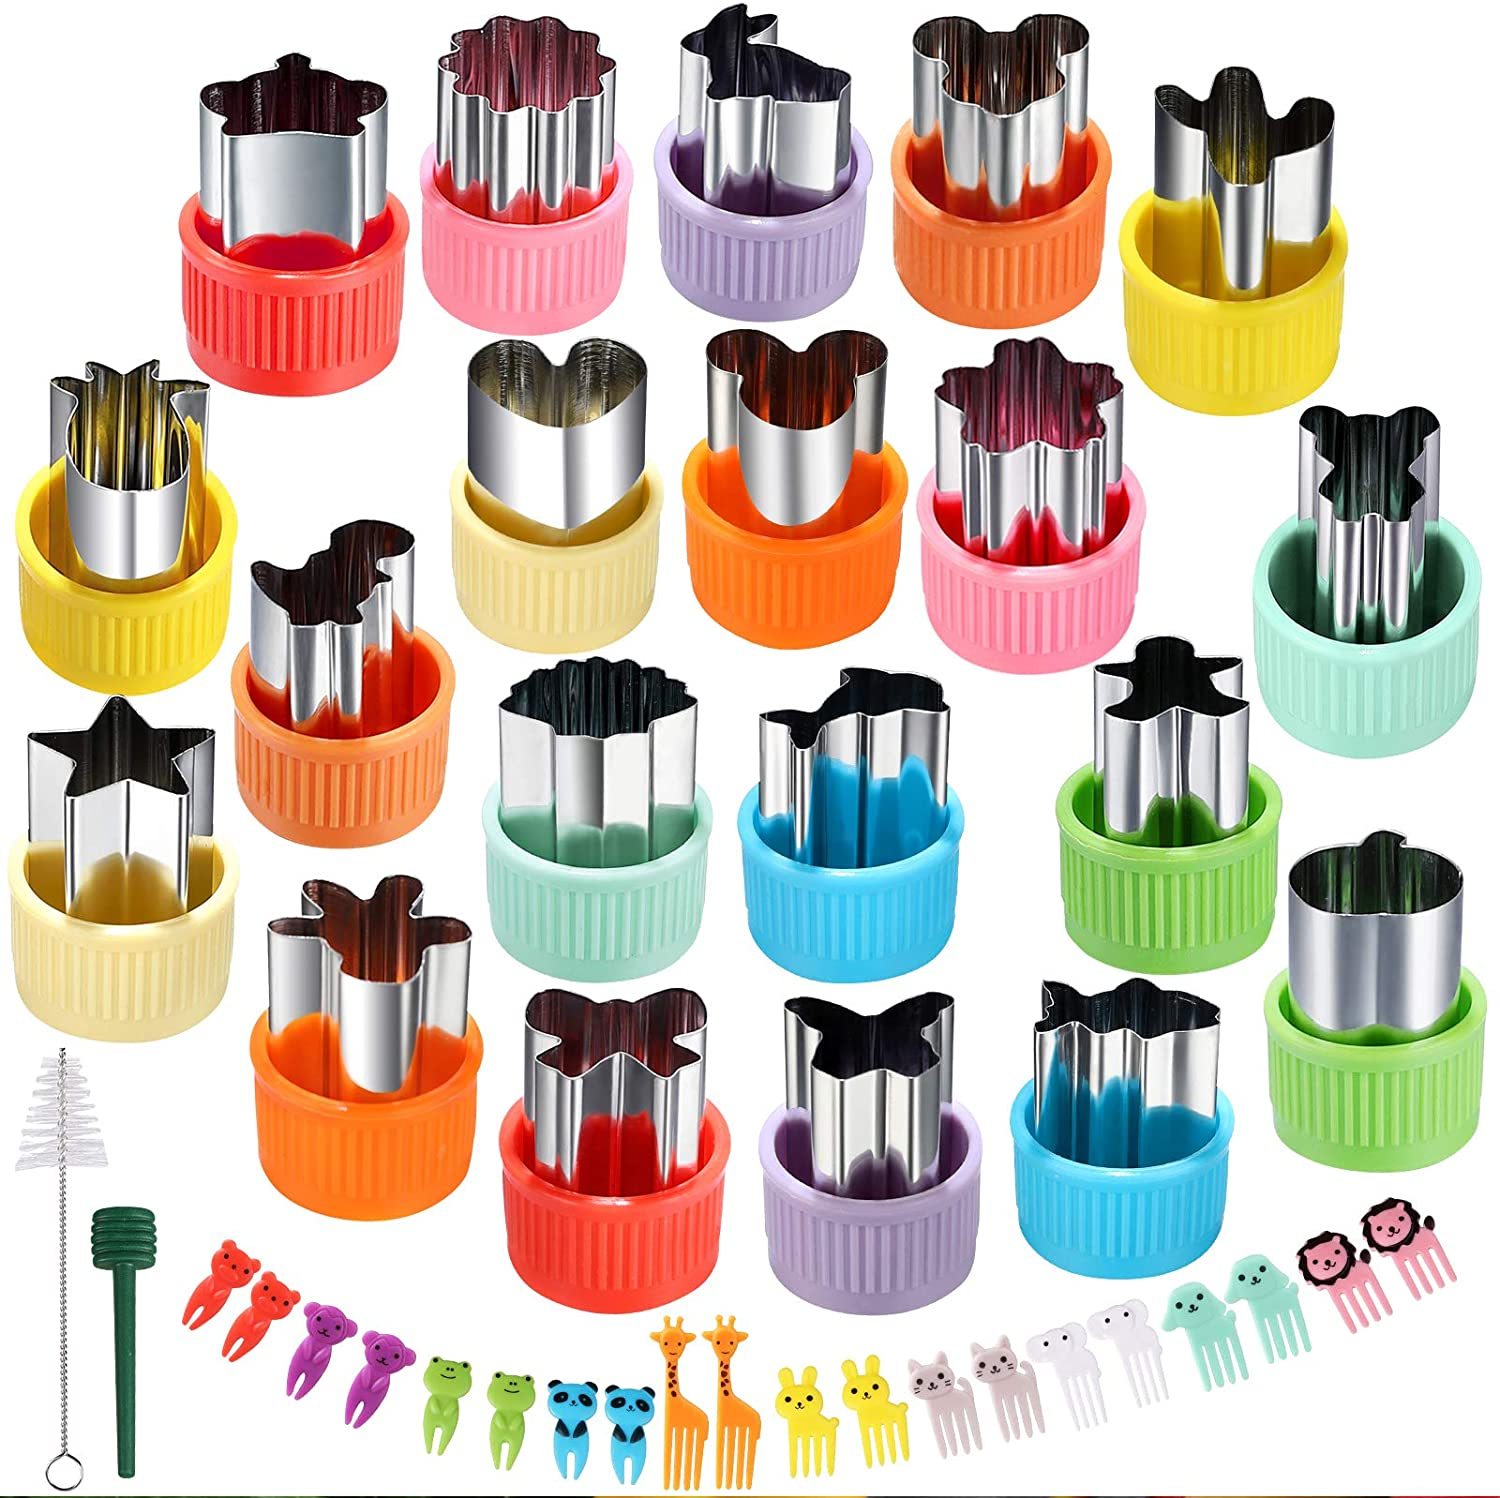 XIYUMINHONG Vegetable Cutter Shape Set,Mini Pie,Fruit and Biscuit Stamp Mold,Biscuit Cutter to Decorate Food, Children's Baking and Food Supplement tool Accessories Kitchen Crafts.(20PCS+20forks)